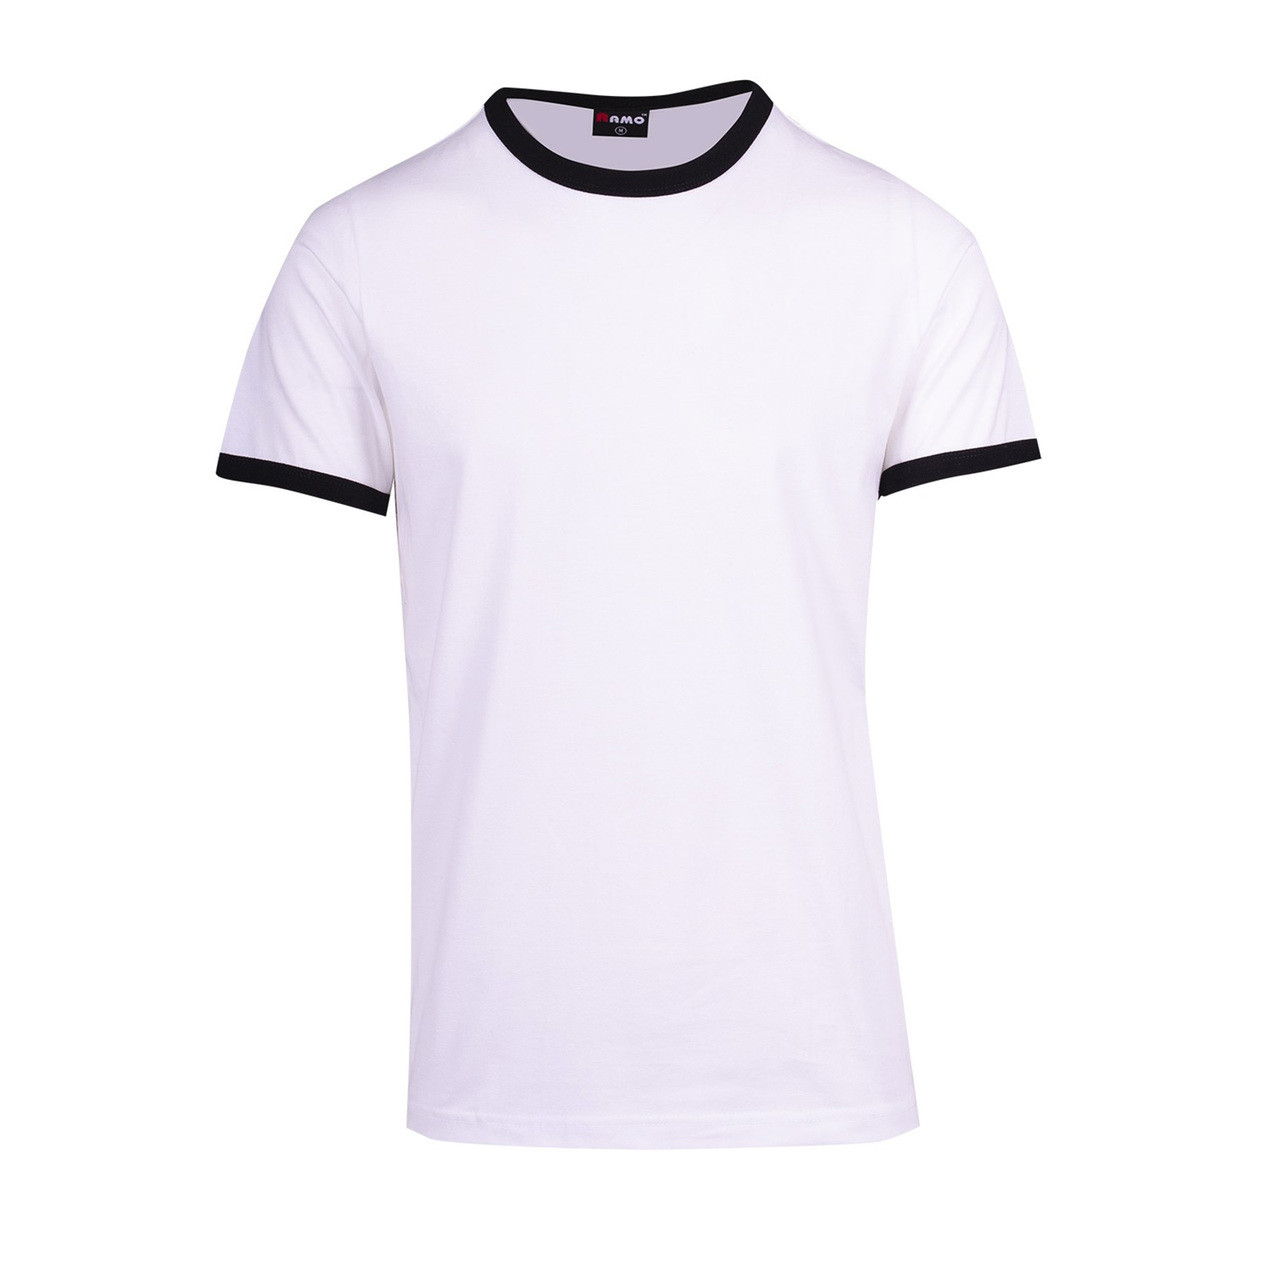 e49436049 MAX | t-shirts slim fit retro ringer-style | Plain T Shirts ...